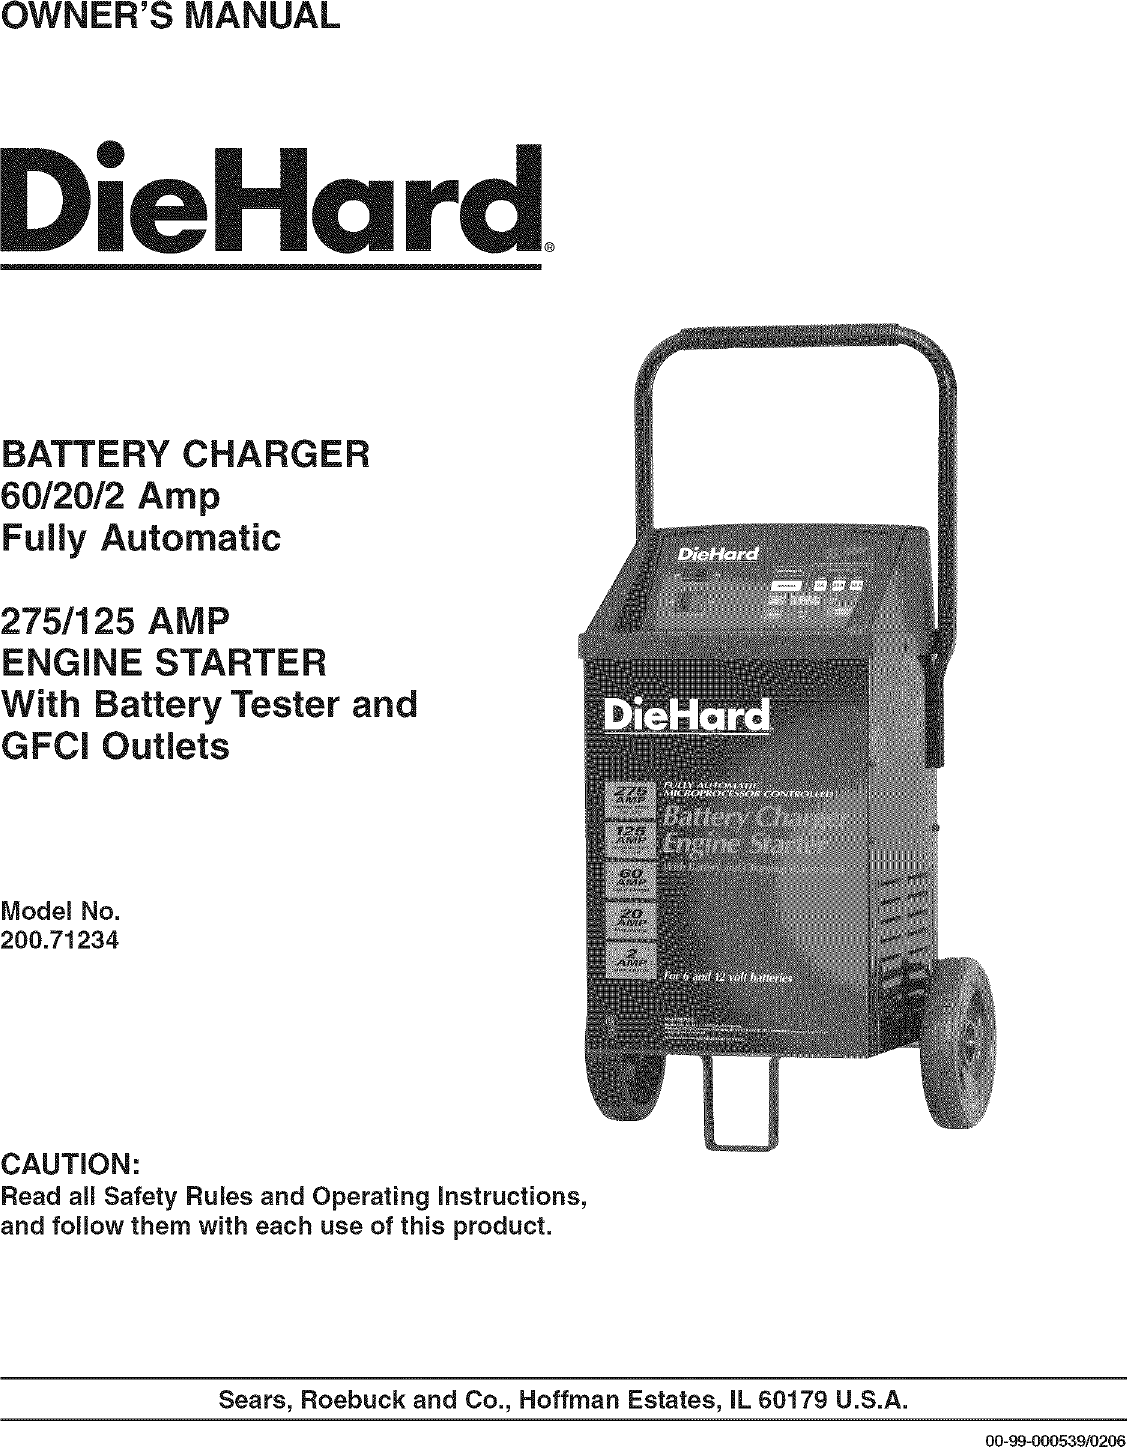 Diehard 20071234 User Manual Battery Charger Manuals And Guides Lr707455